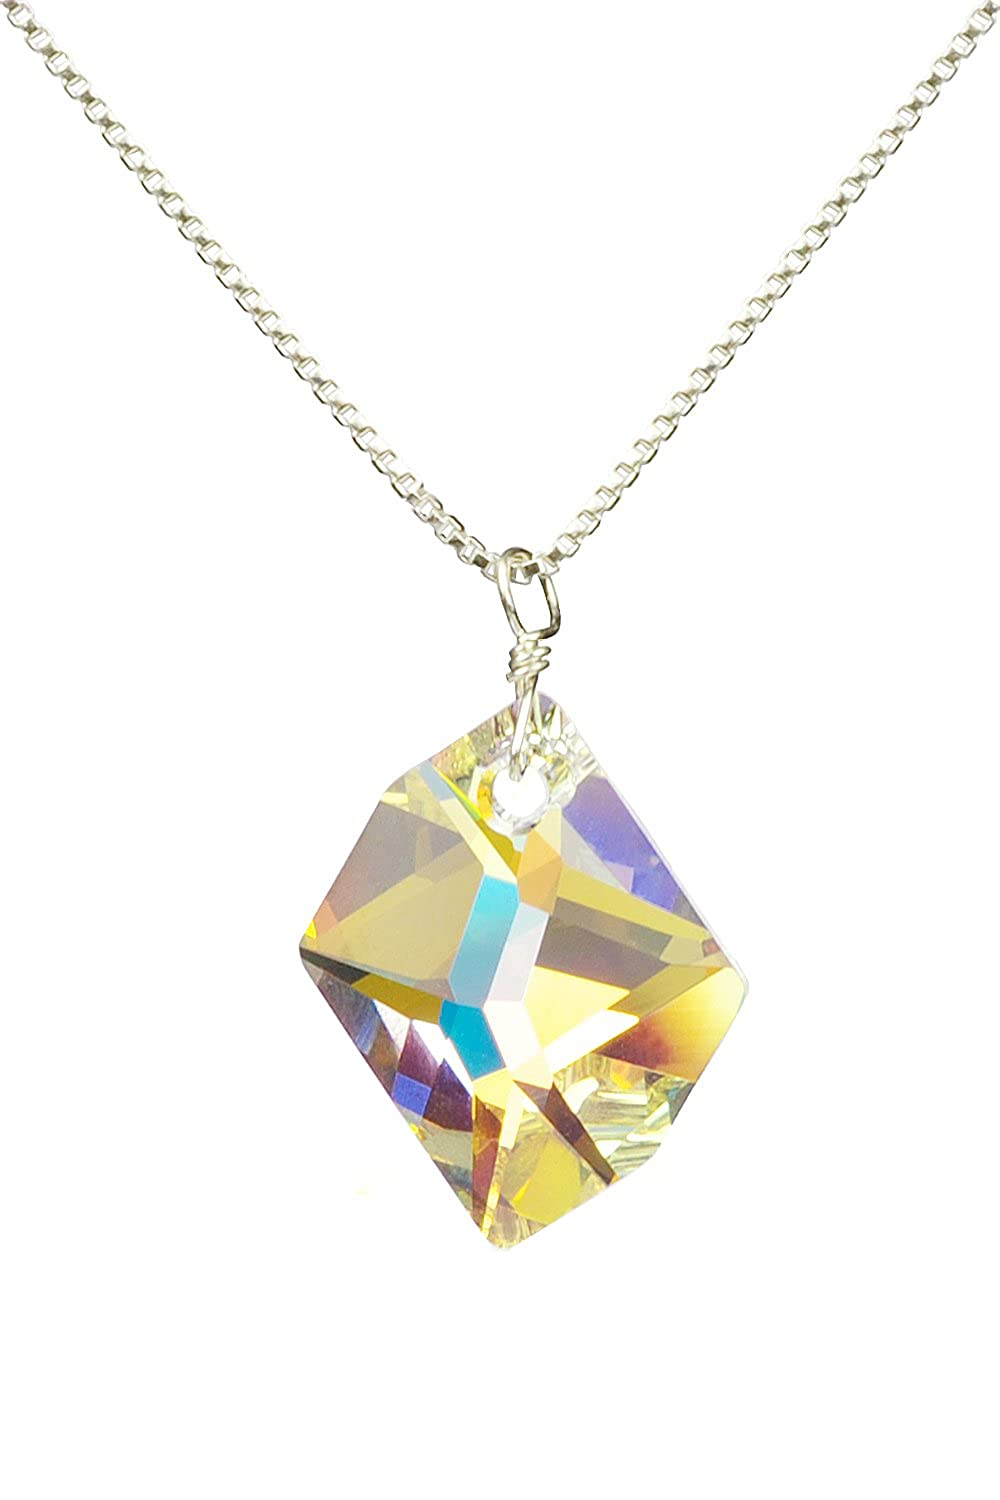 2 extender Aurora Borealis Pendant Necklace made with Swarovski Crystals Sterling Silver 18